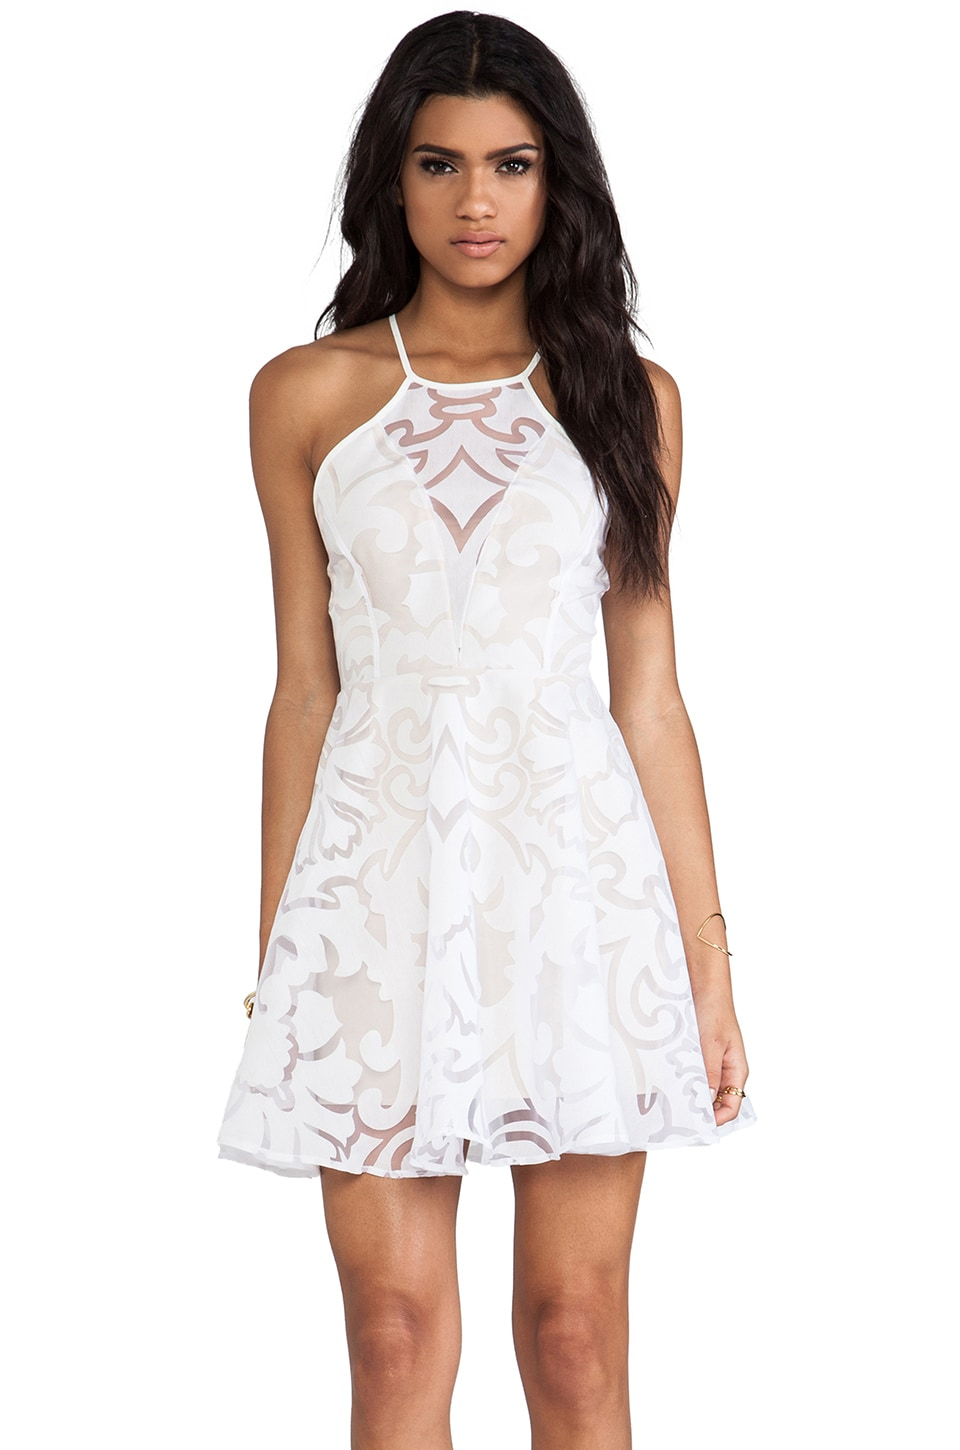 keepsake Romantic Rebel Dress in Ivory Lace Burnout